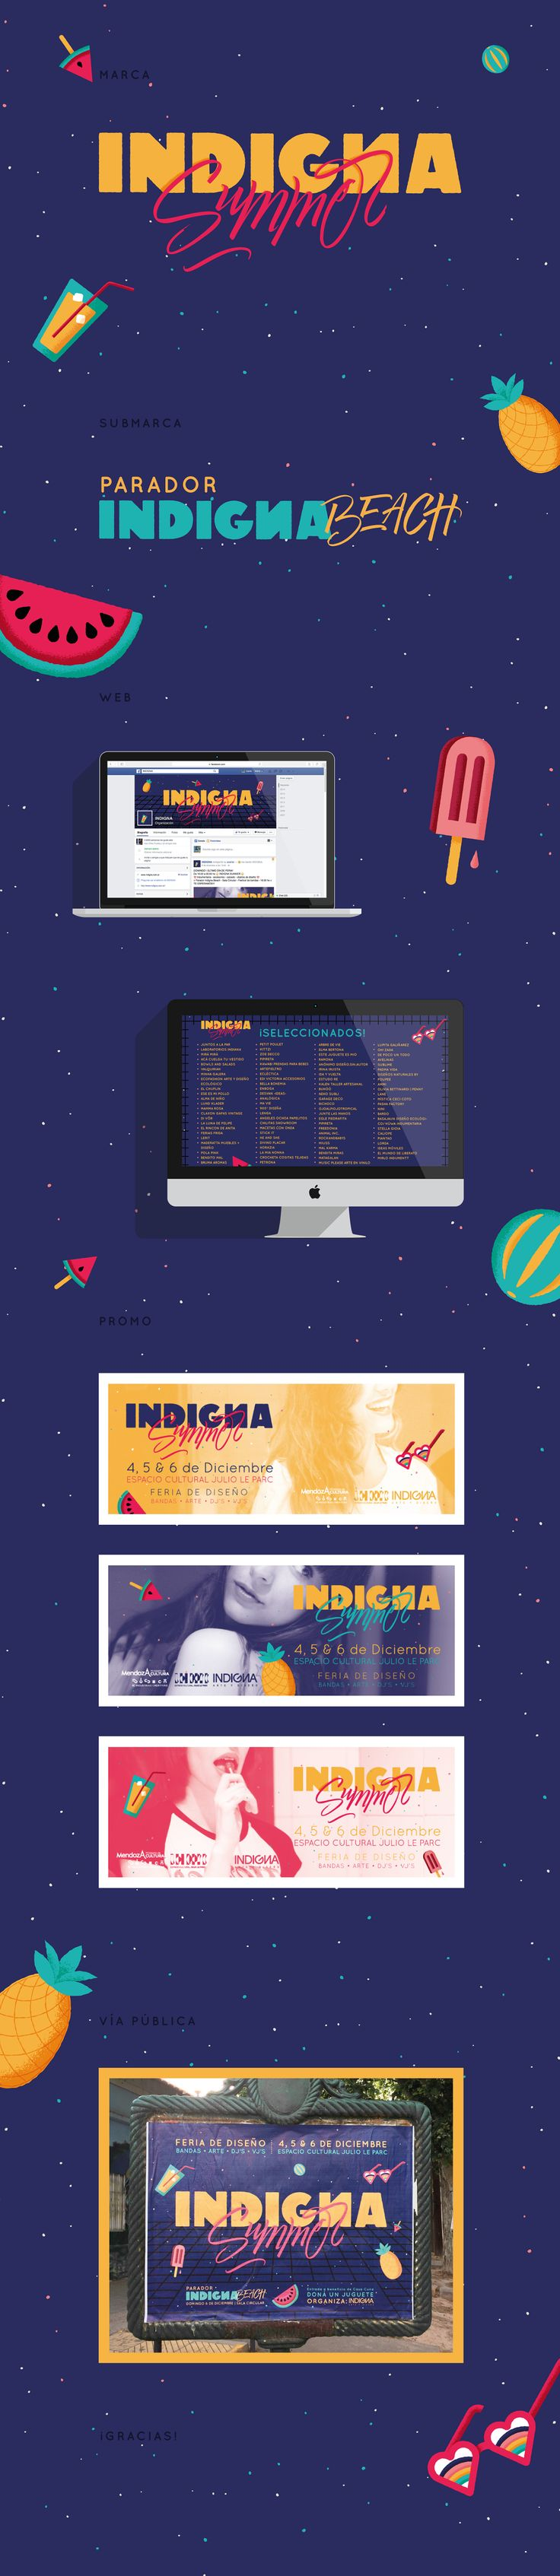 INDIGNA Summer on Behance